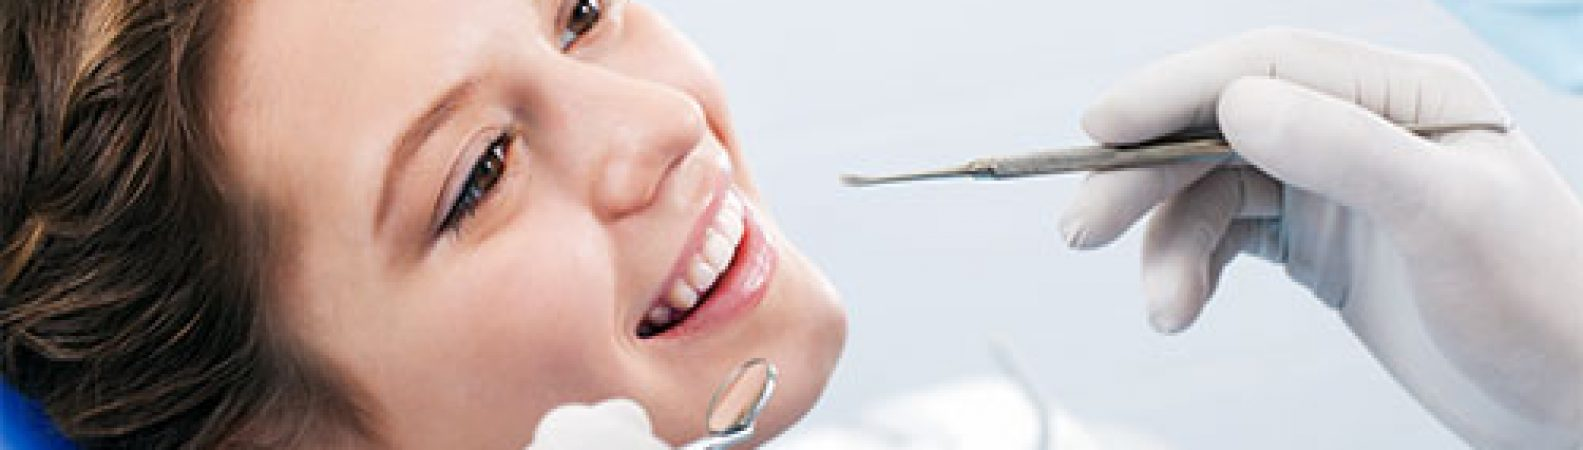 Learn The Truth About Root Canals, Pain, And Treatment